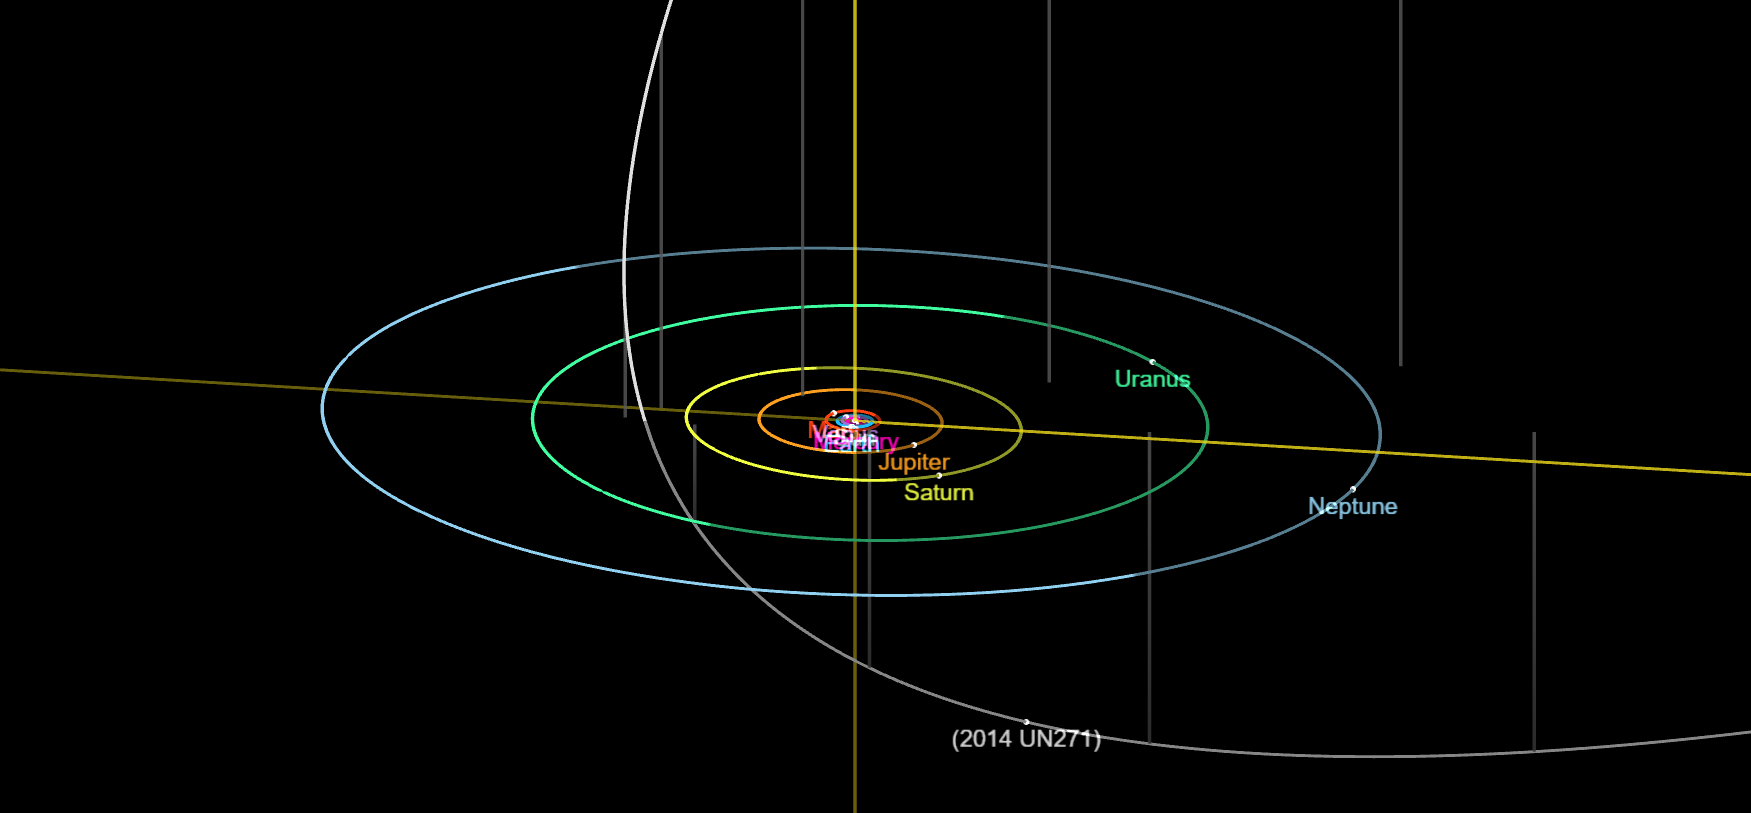 The current position and orbit of the object is 2014 UN271. Credit: JPL Small-Body Database